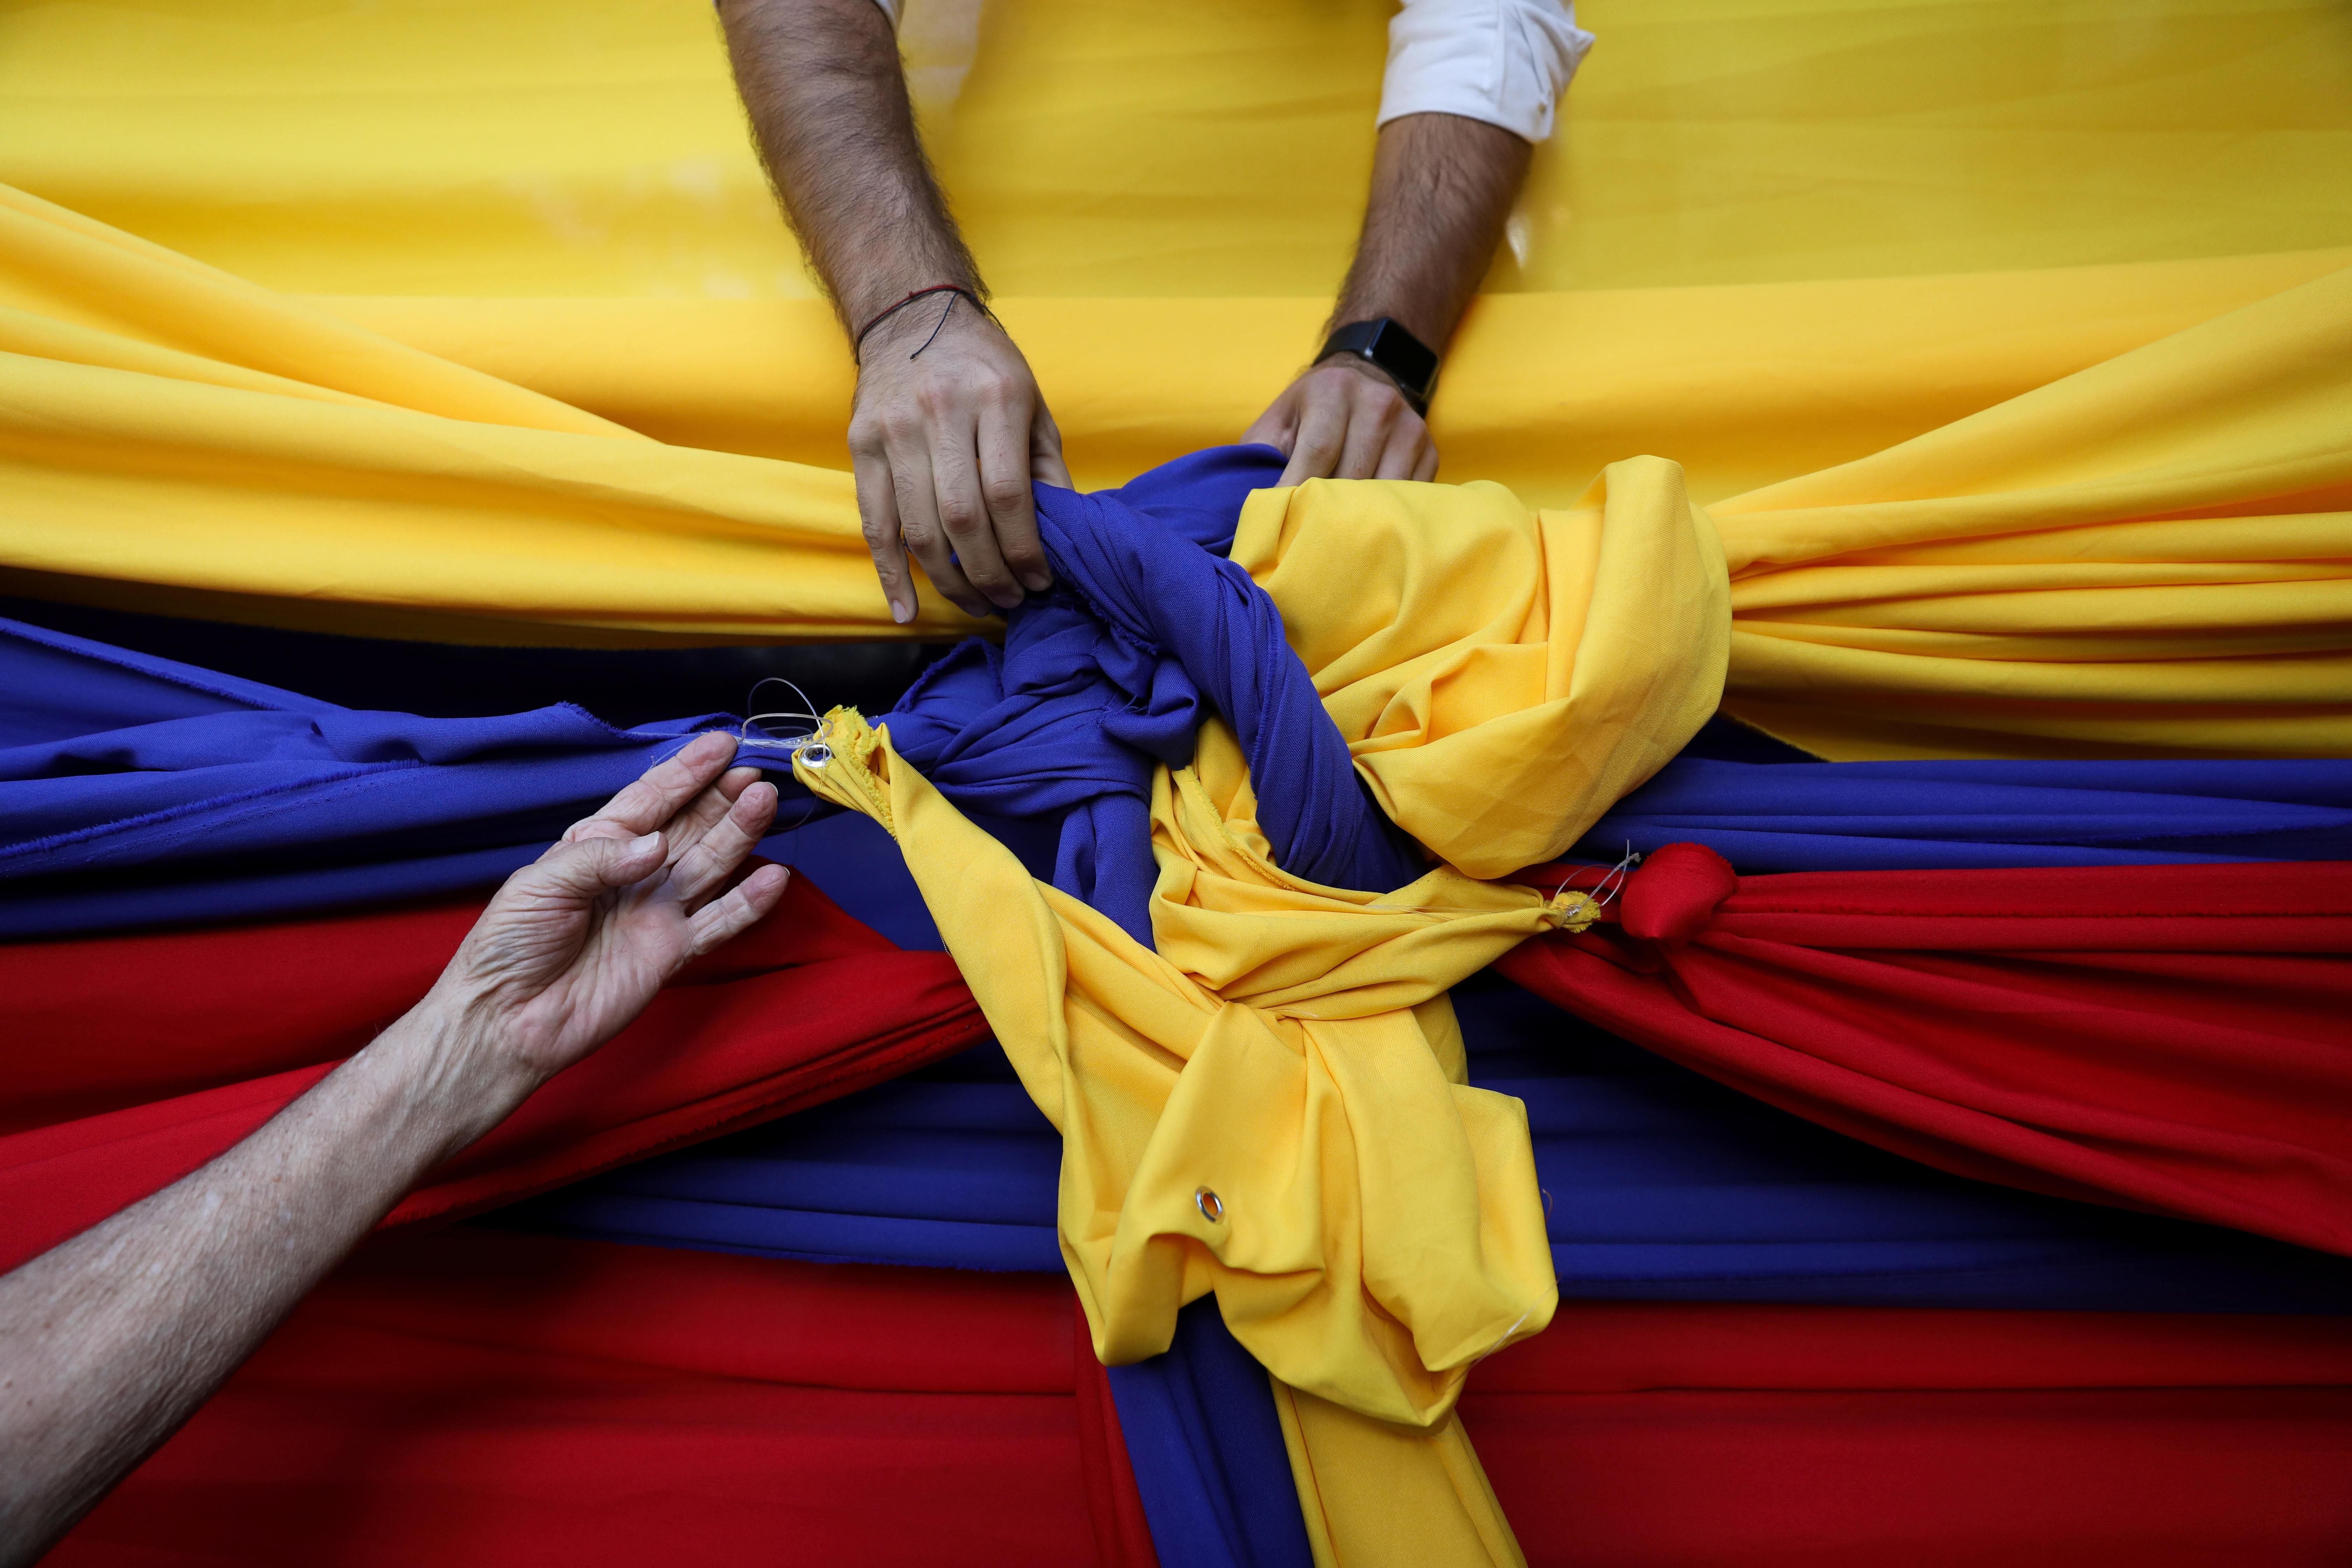 People untie cloth tarps with colors of the Venezuelan flag after a citizen assembly with Juan Guaidó, speaker of the National Assembly, in Caracas. Reuters